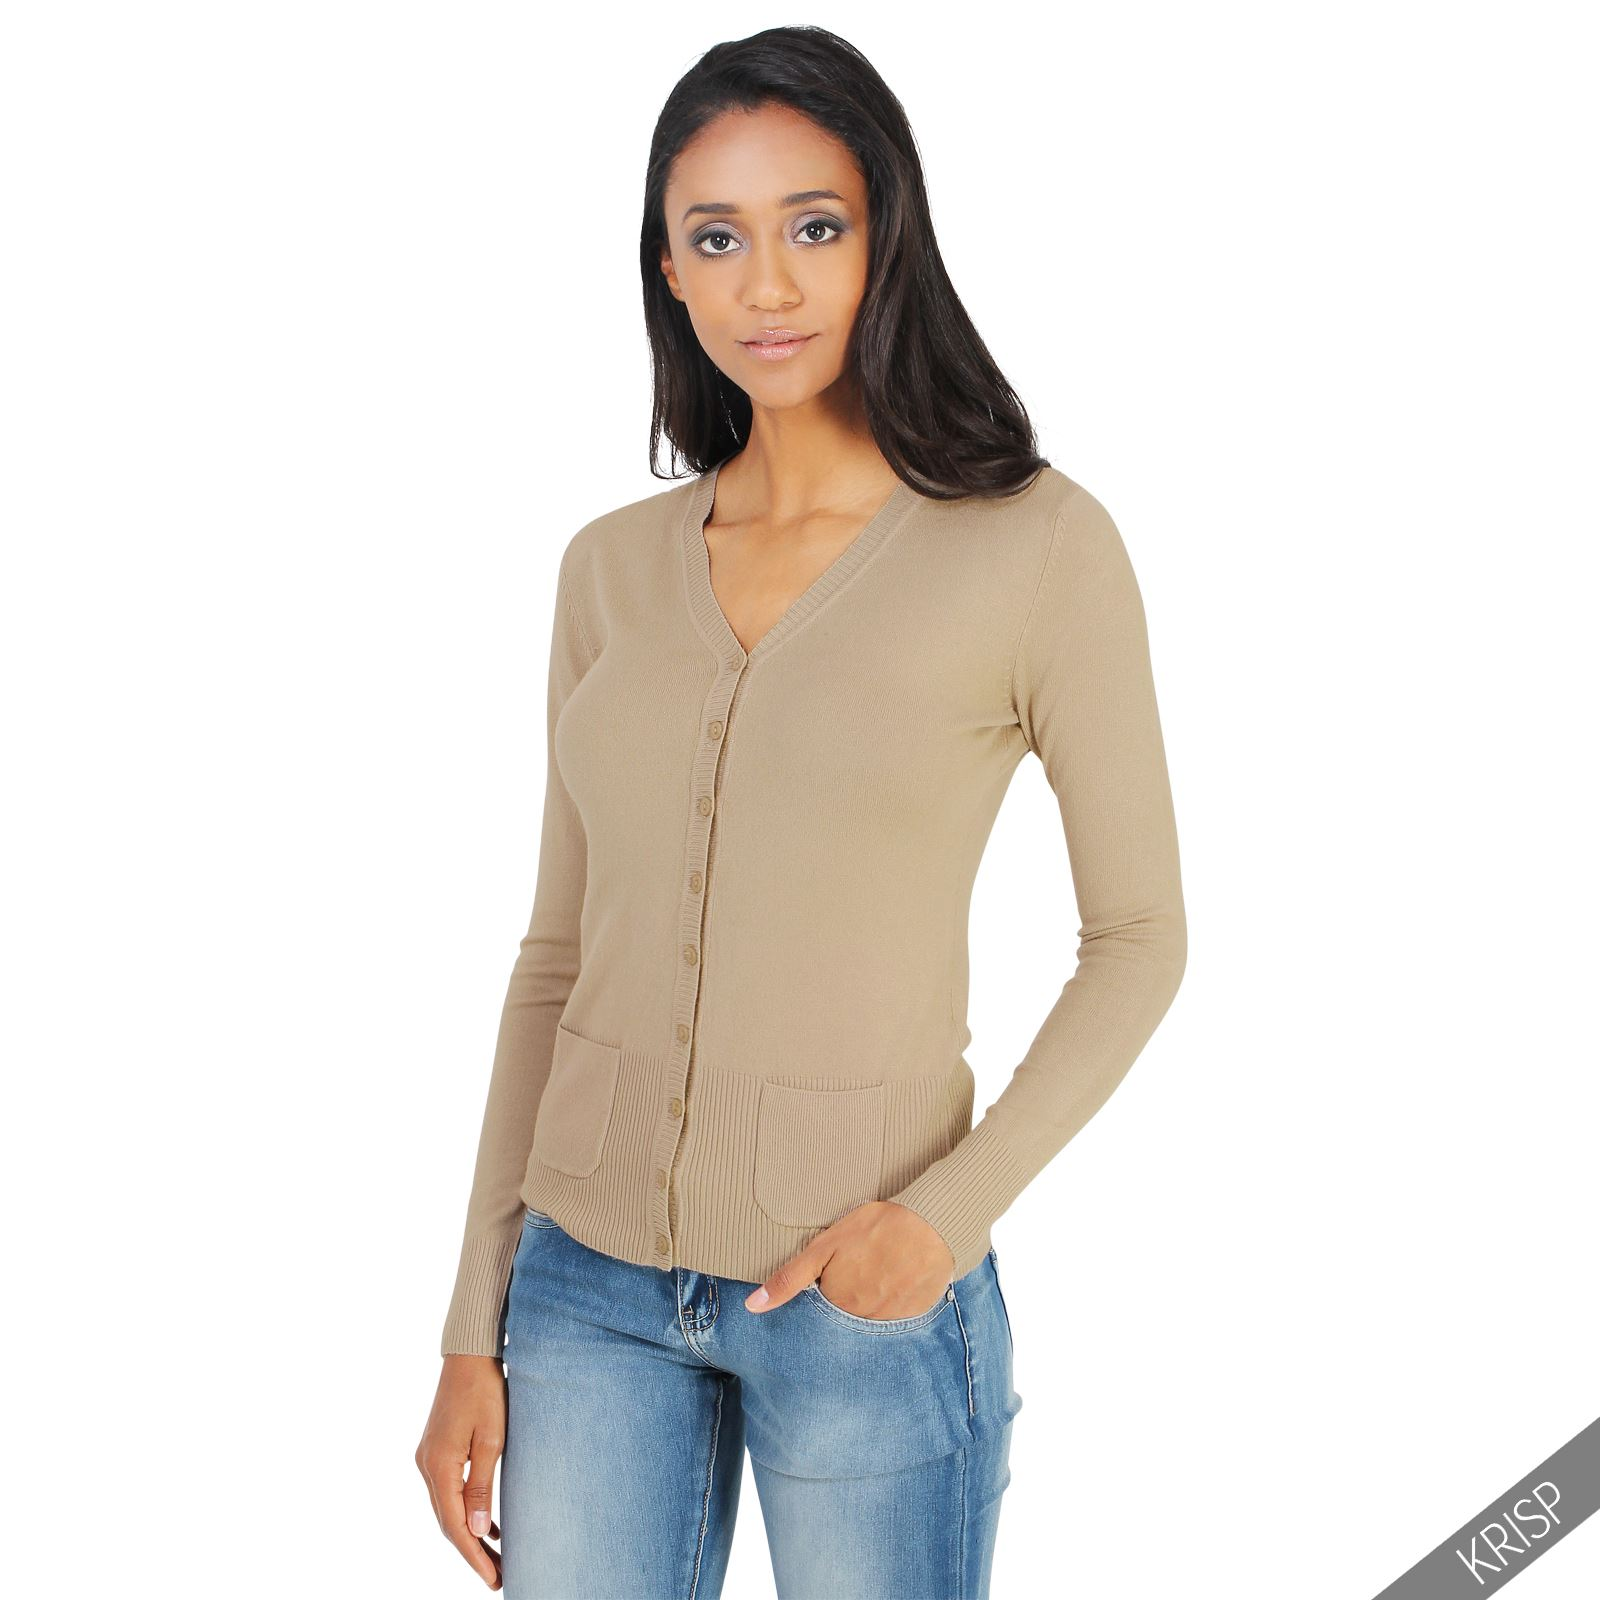 Buy Sweaters And Cardigans Online, Cardigan Sweaters For Women, Ladies Sweaters Cardigans. Pls input valid keywords! Track Order. Sign in/Register Please select your shipping destination. Shipping to: Save Afghanistan Albania Algeria Andorra Angola Argentina Aruba Australia Austria Azerbaijan Bahamas Bangladesh.